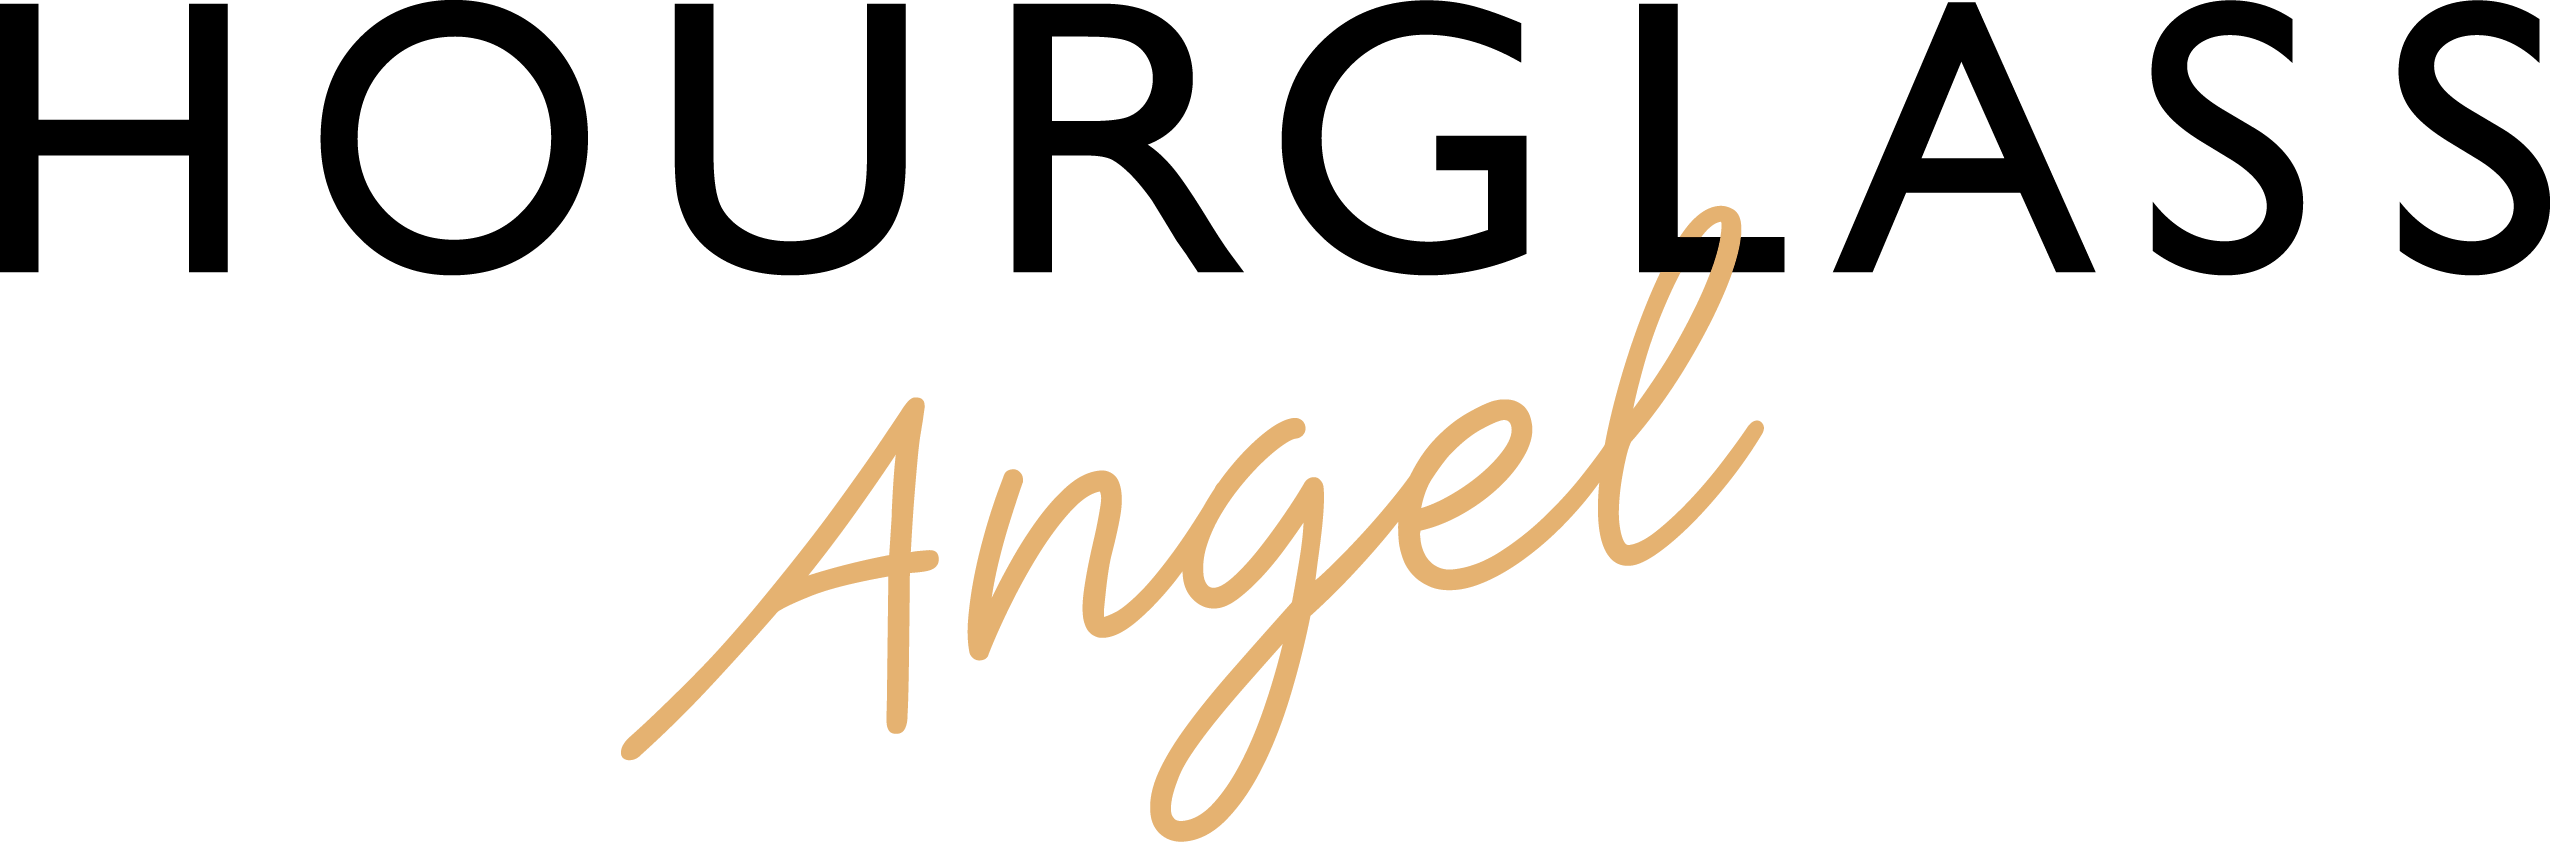 30-Day Booty Building Challenge - Hourglass Angel